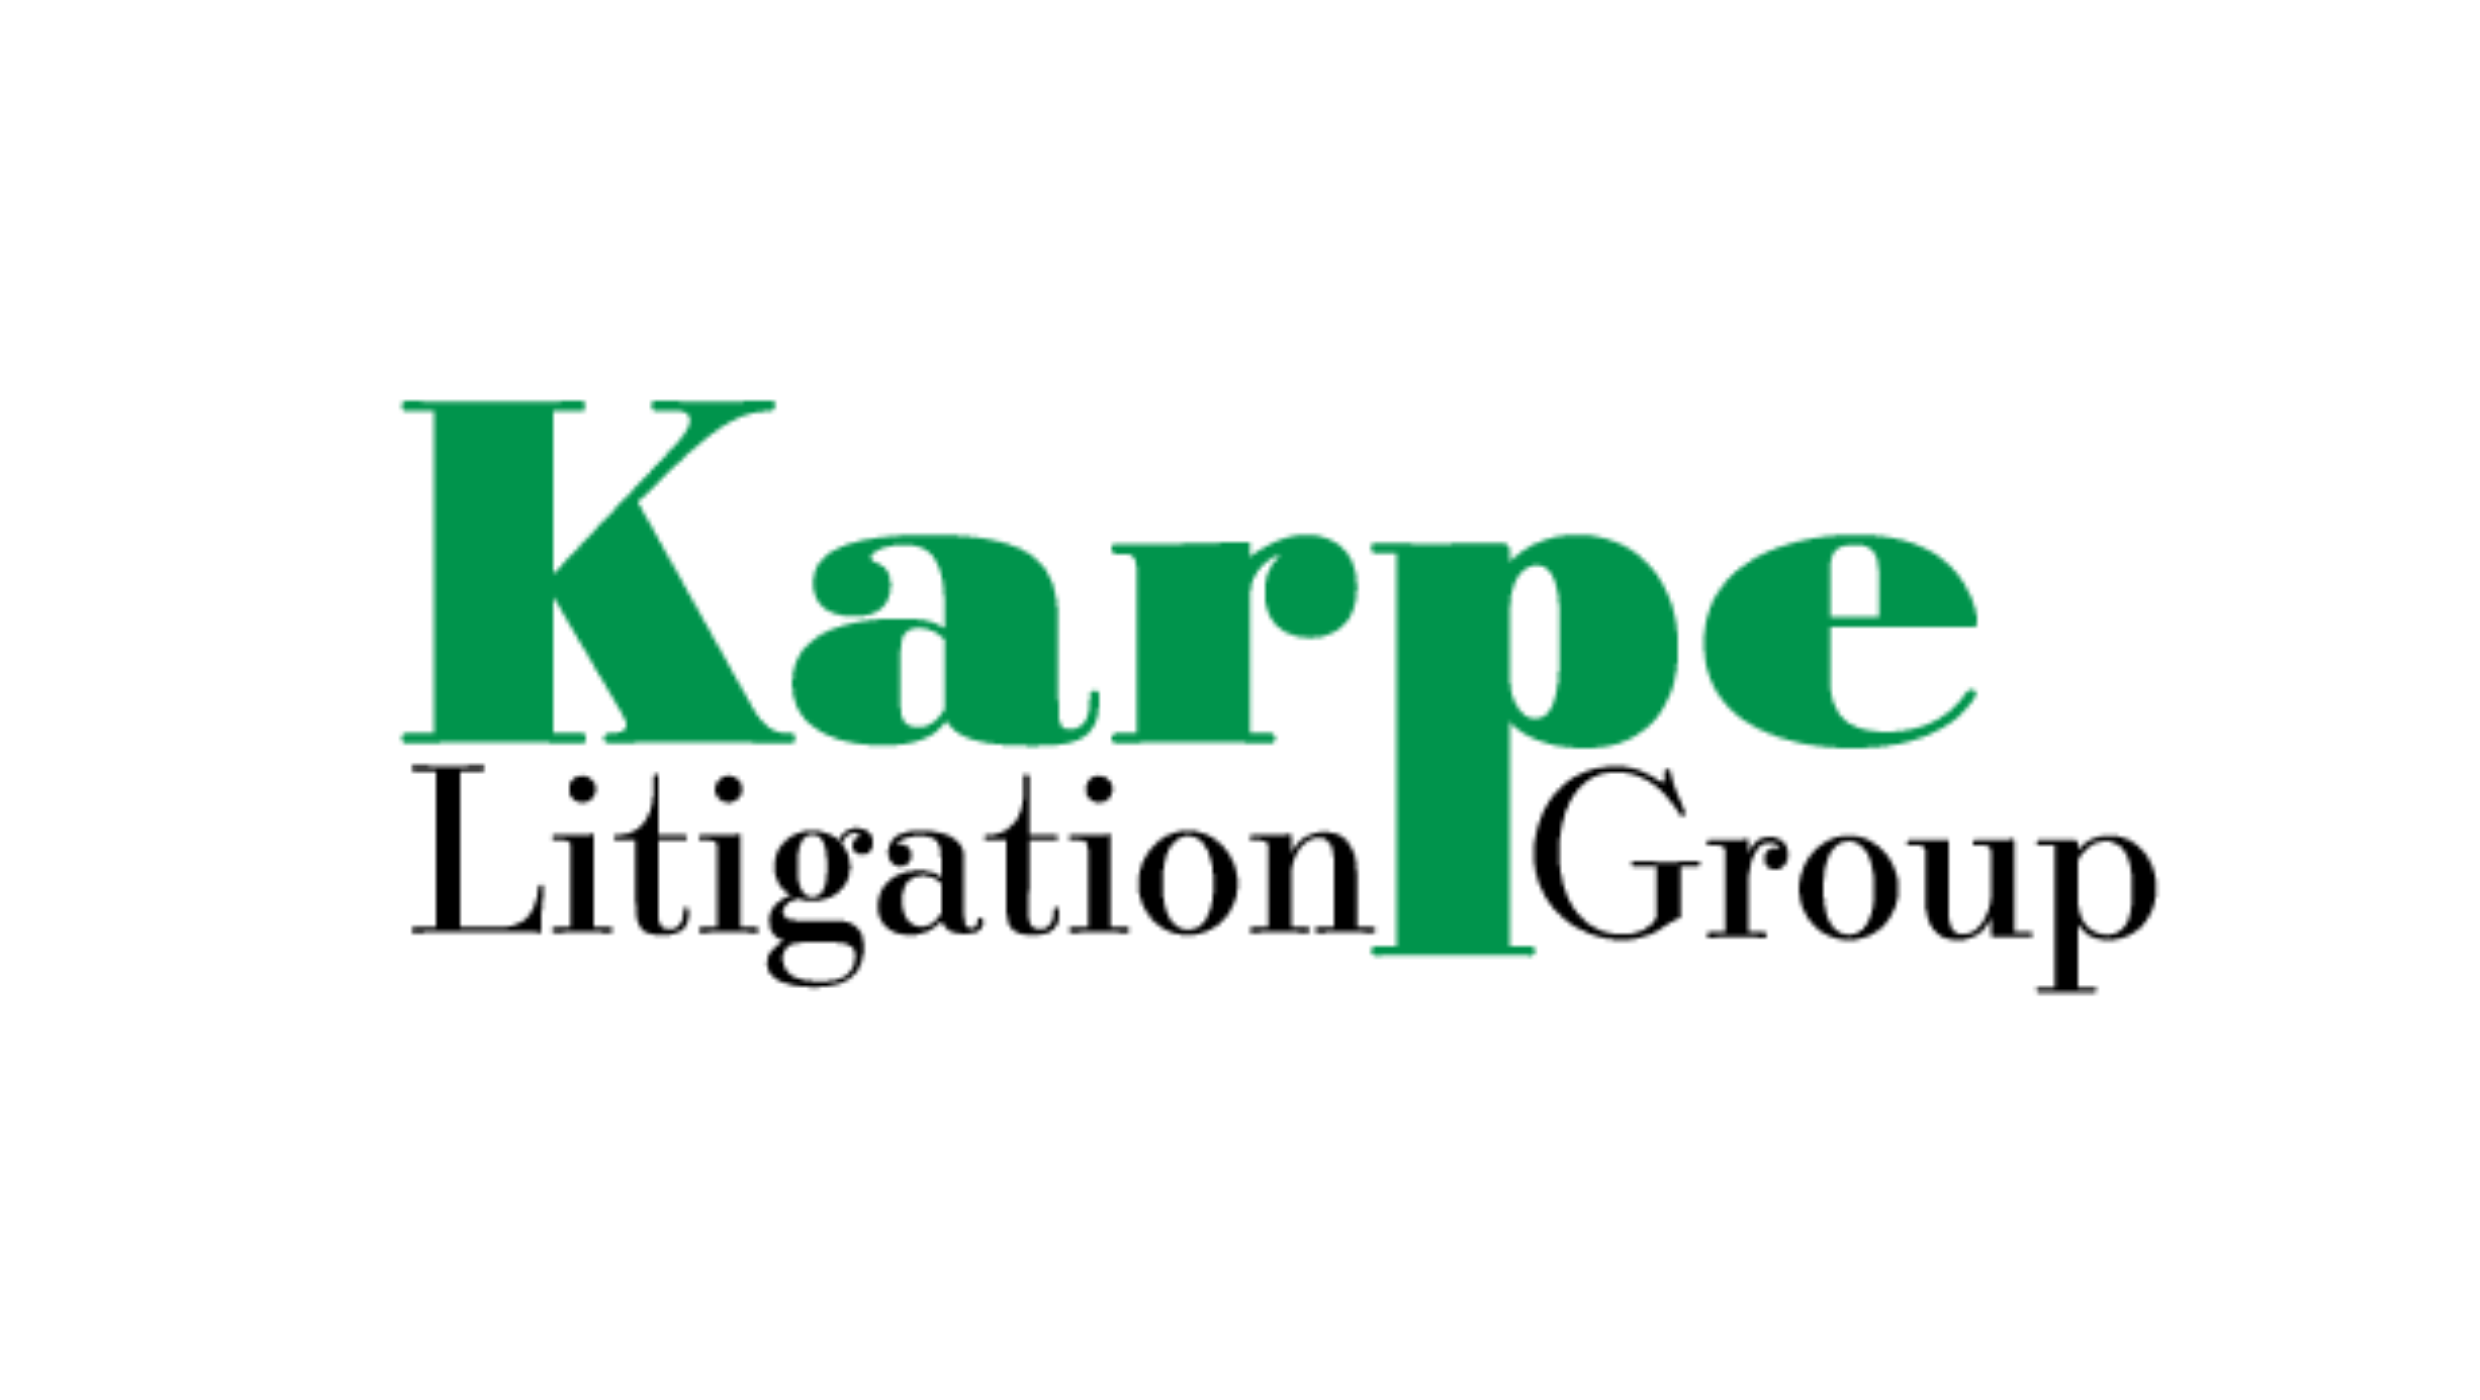 Karpe Litigation Group